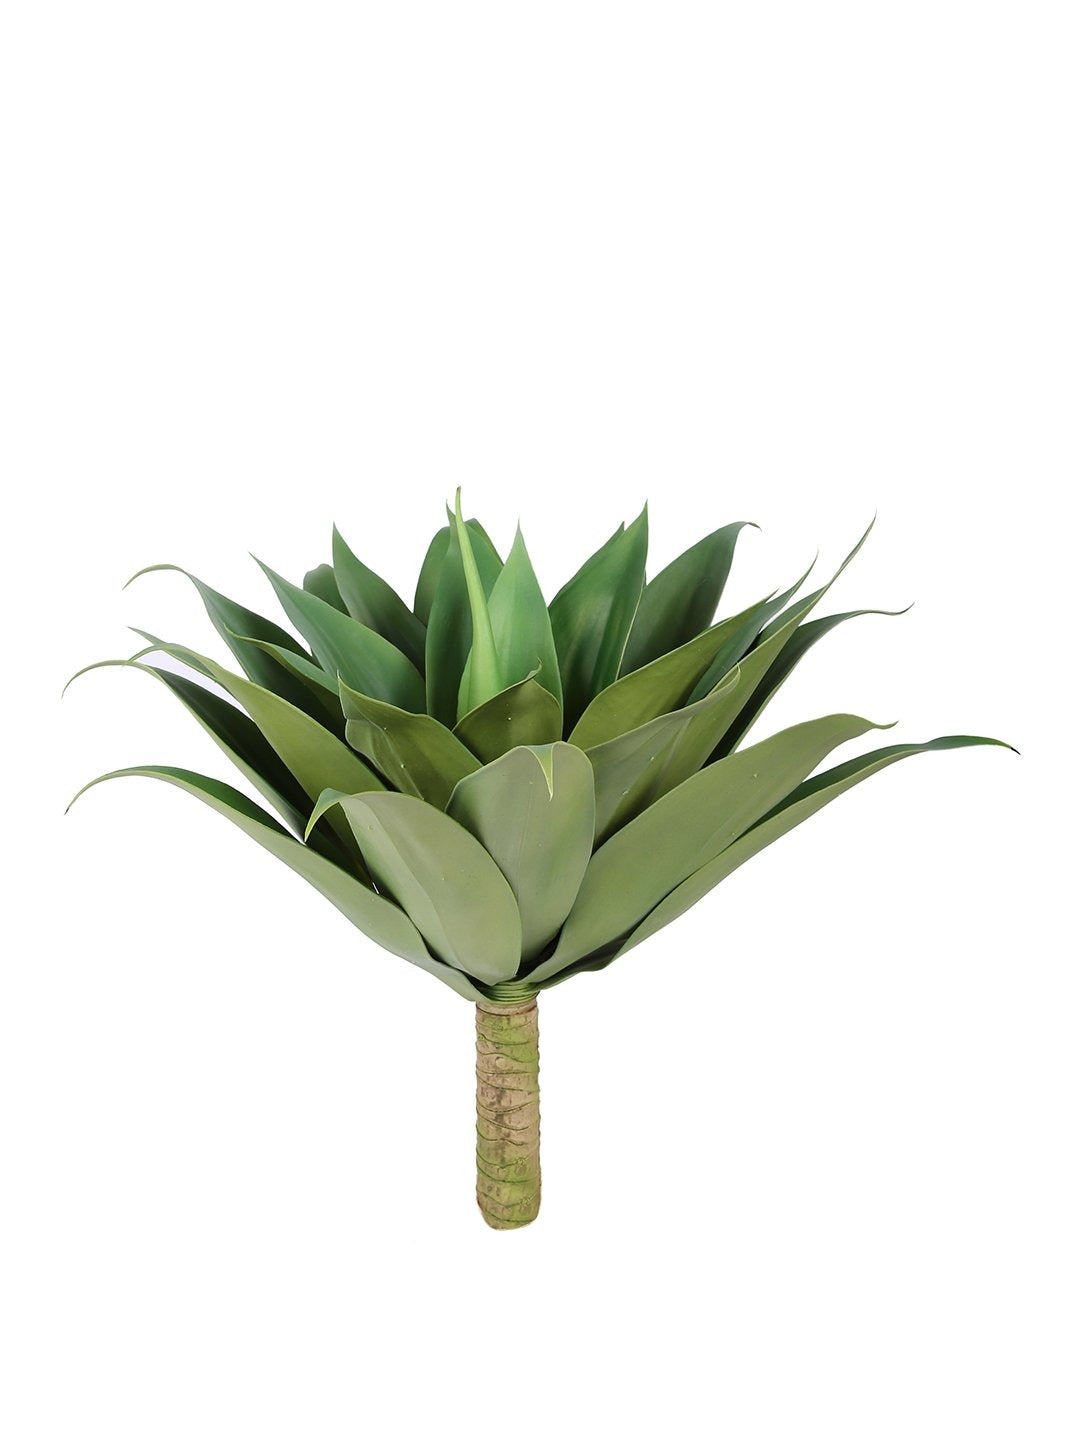 Artificial Flower Without Pot By PolliNation ( L 56 cm X H 51 cm ) - Artificial Flowers & Plants - PolliNation